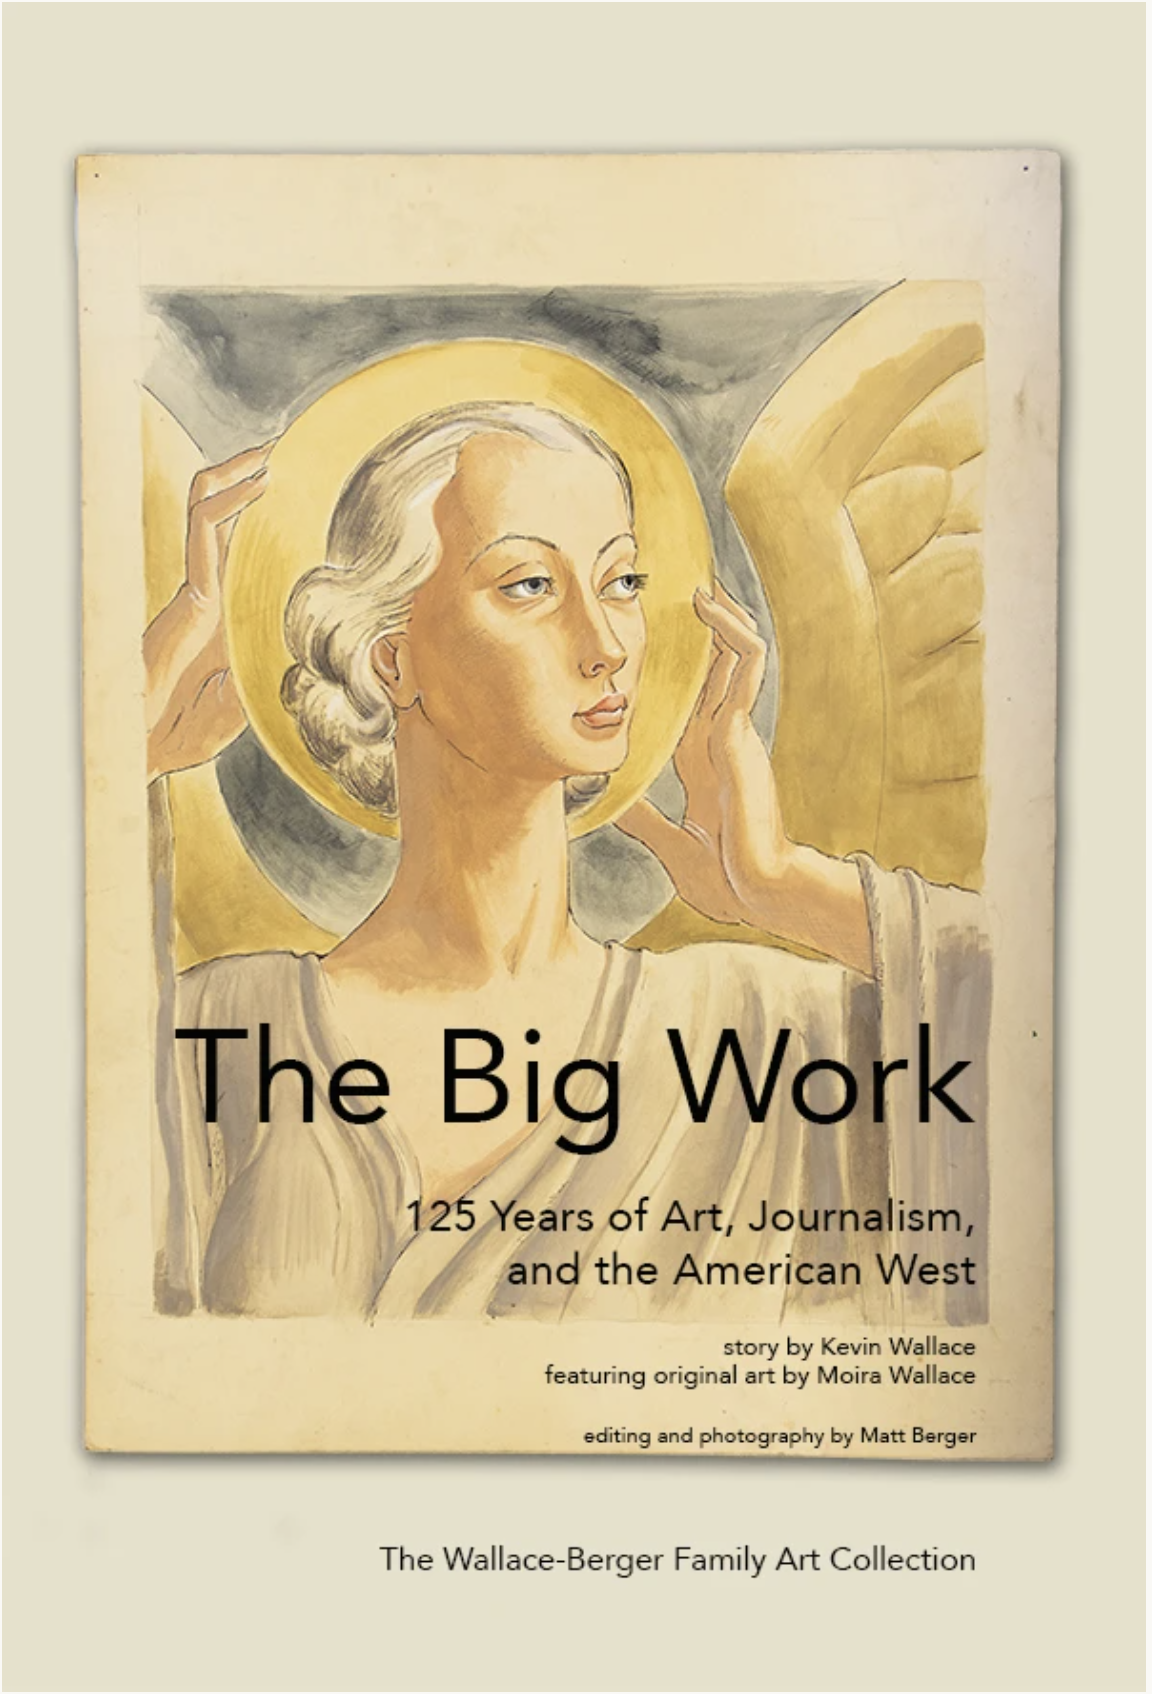 The Big Work: 125 Years of Art, Journalism, and the American West